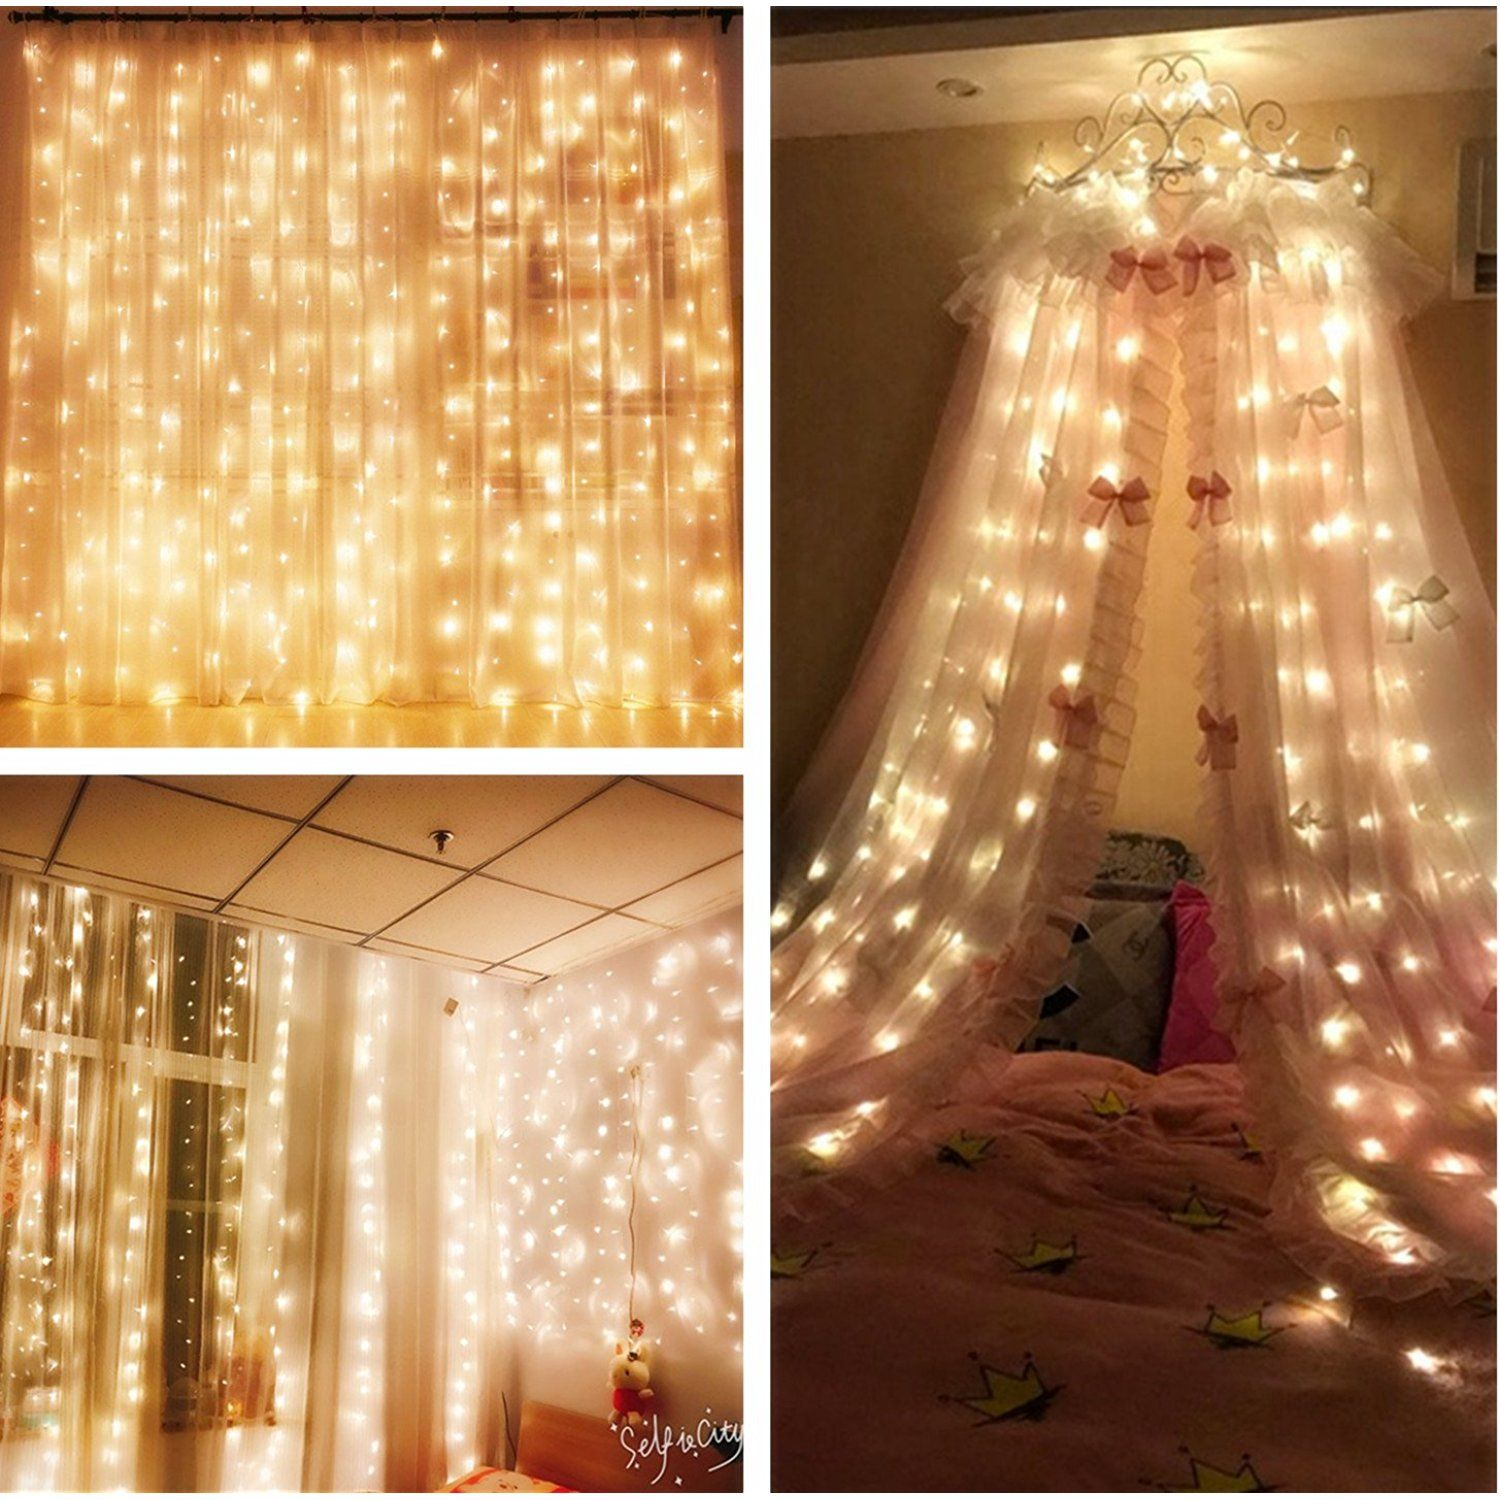 MZD8391 Curtain Icicle Lights, 9.8 X 9.8ft 304 LED Starry Fairy ...